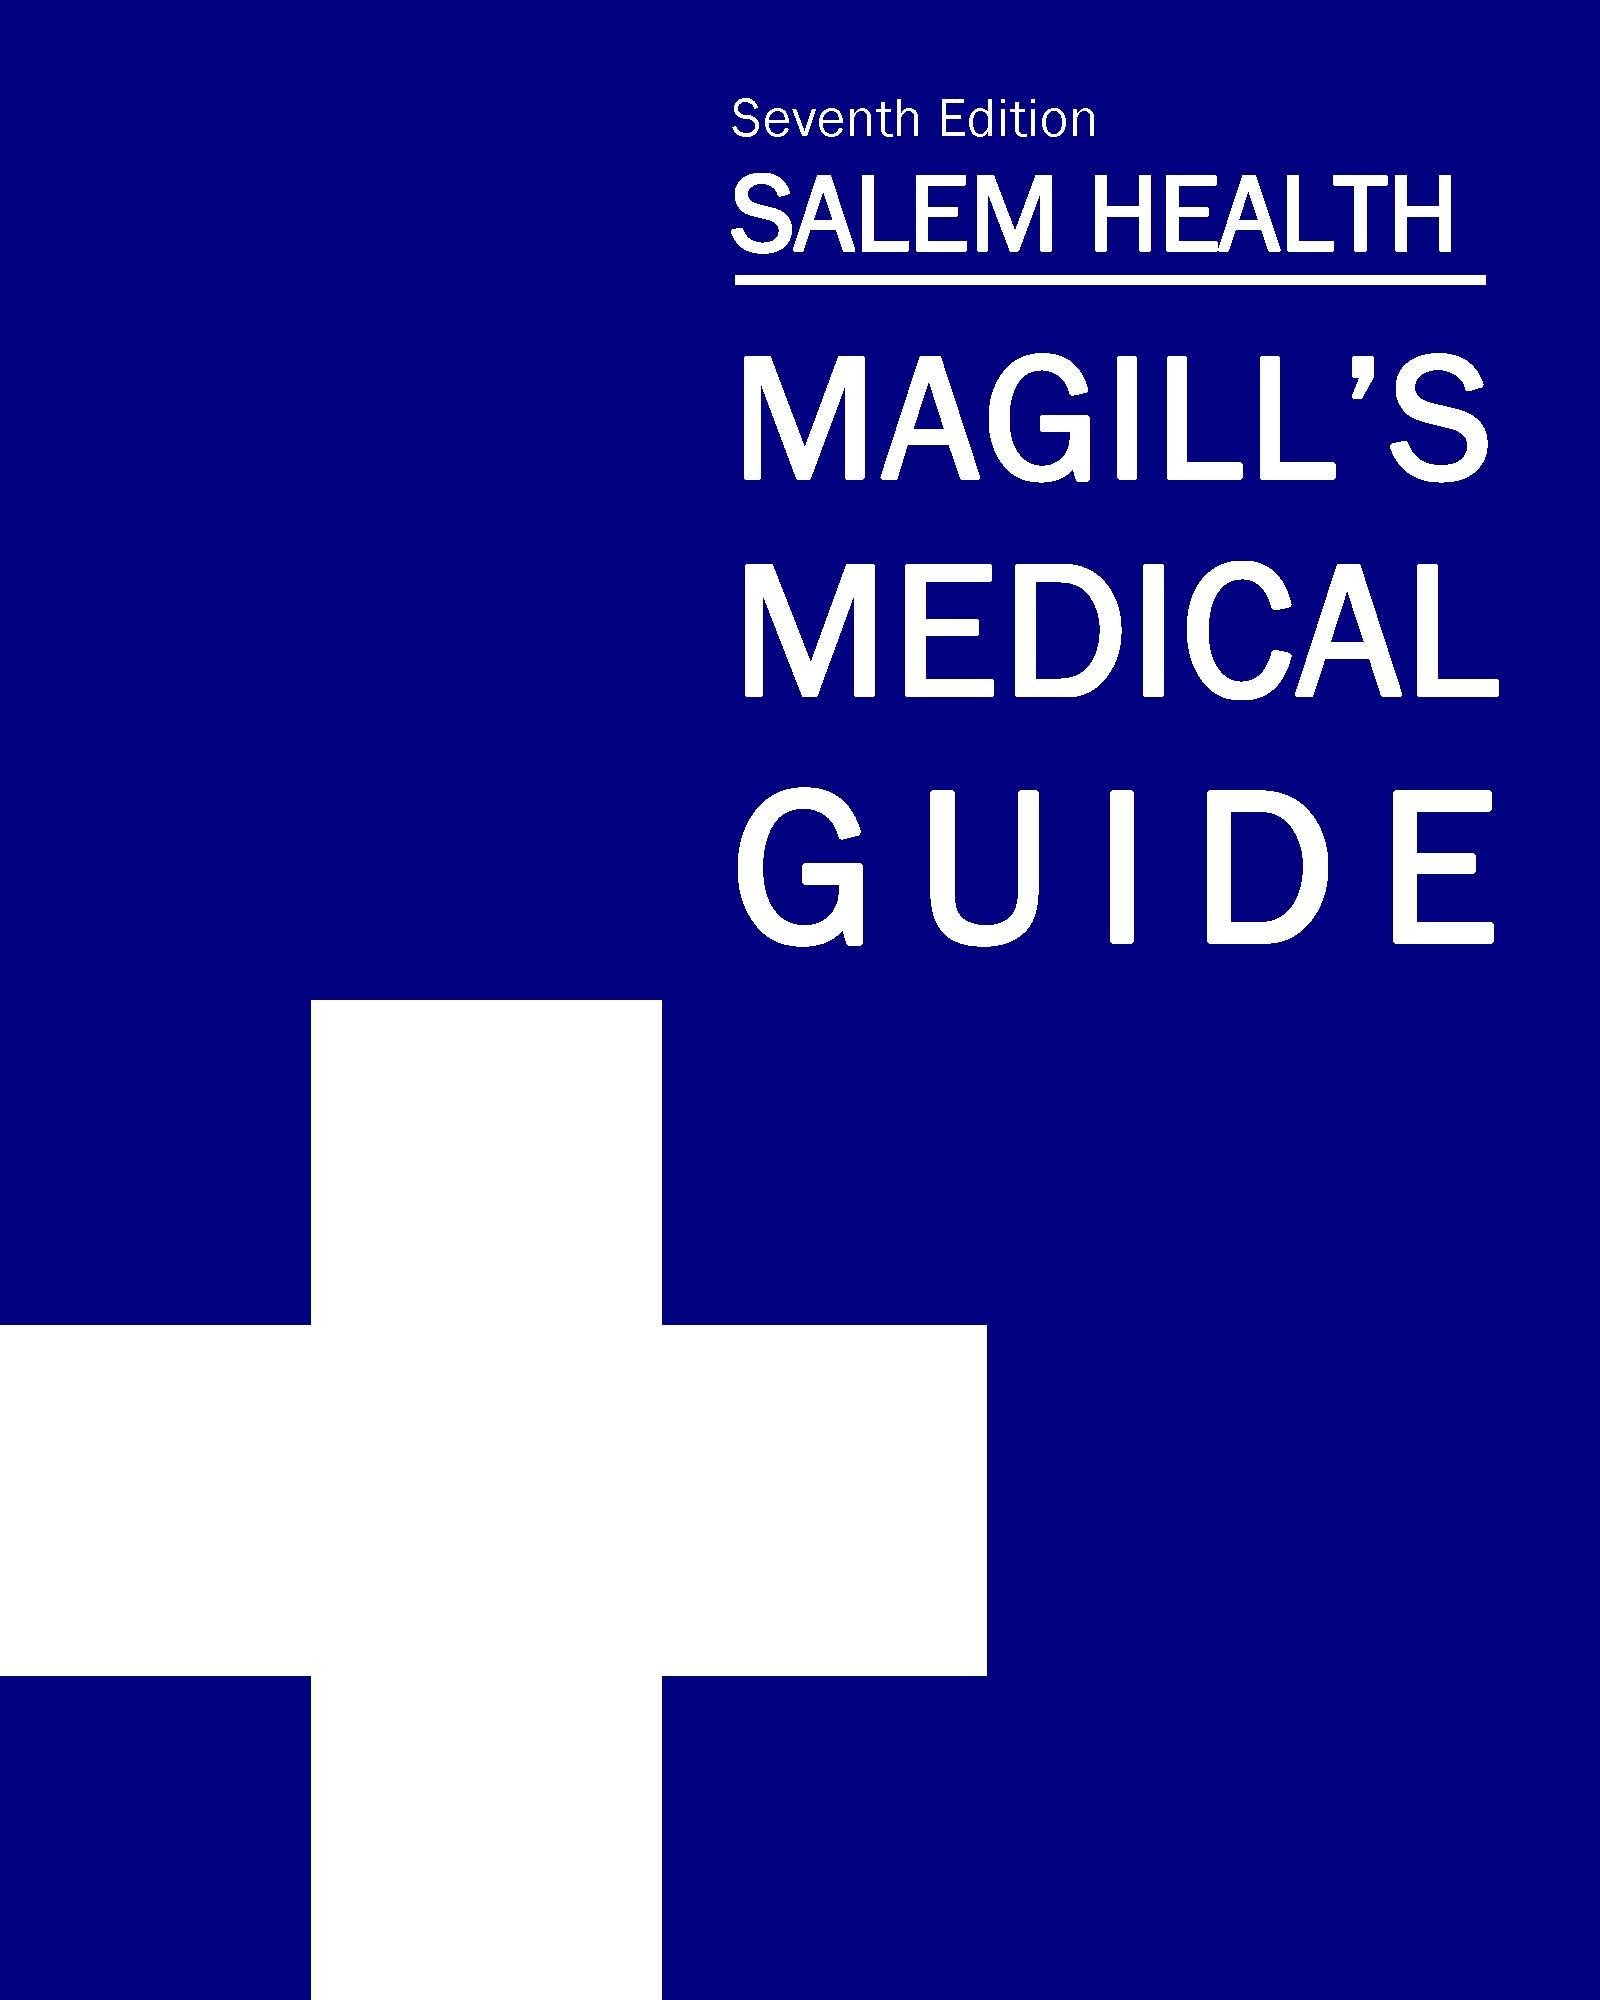 Magill's Medical Guide 7th edition